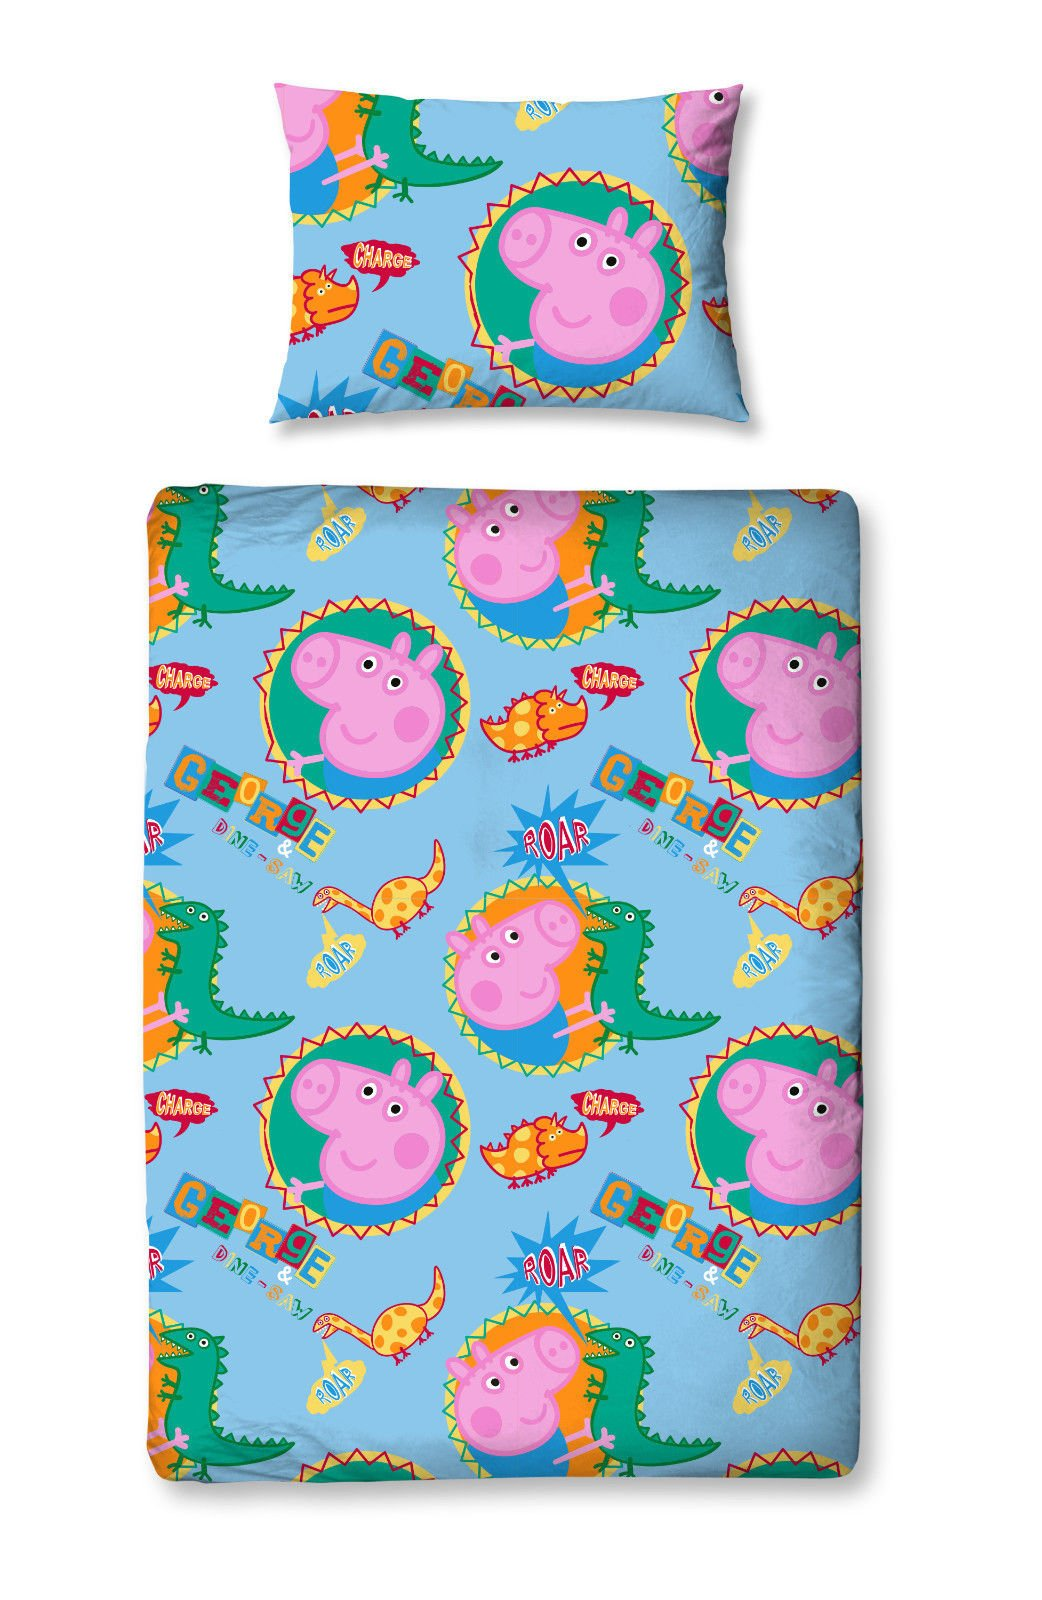 Peppa Pig George Pig Roar Bed in a Bag Set - Toddler by Character World